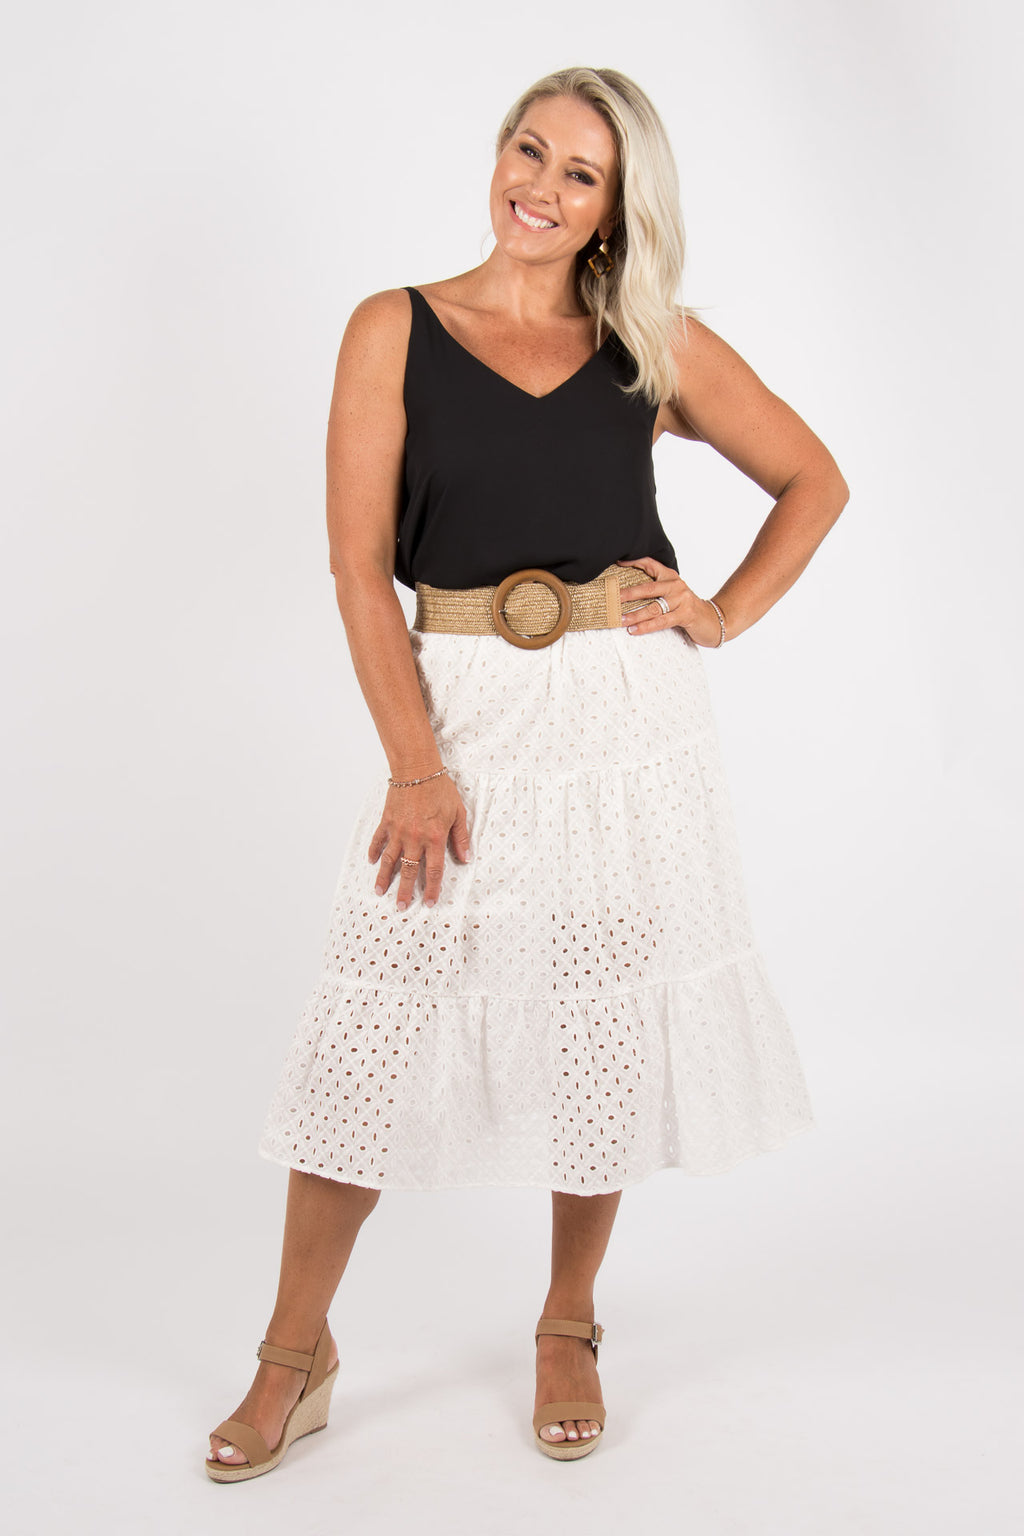 Kendra Skirt in White